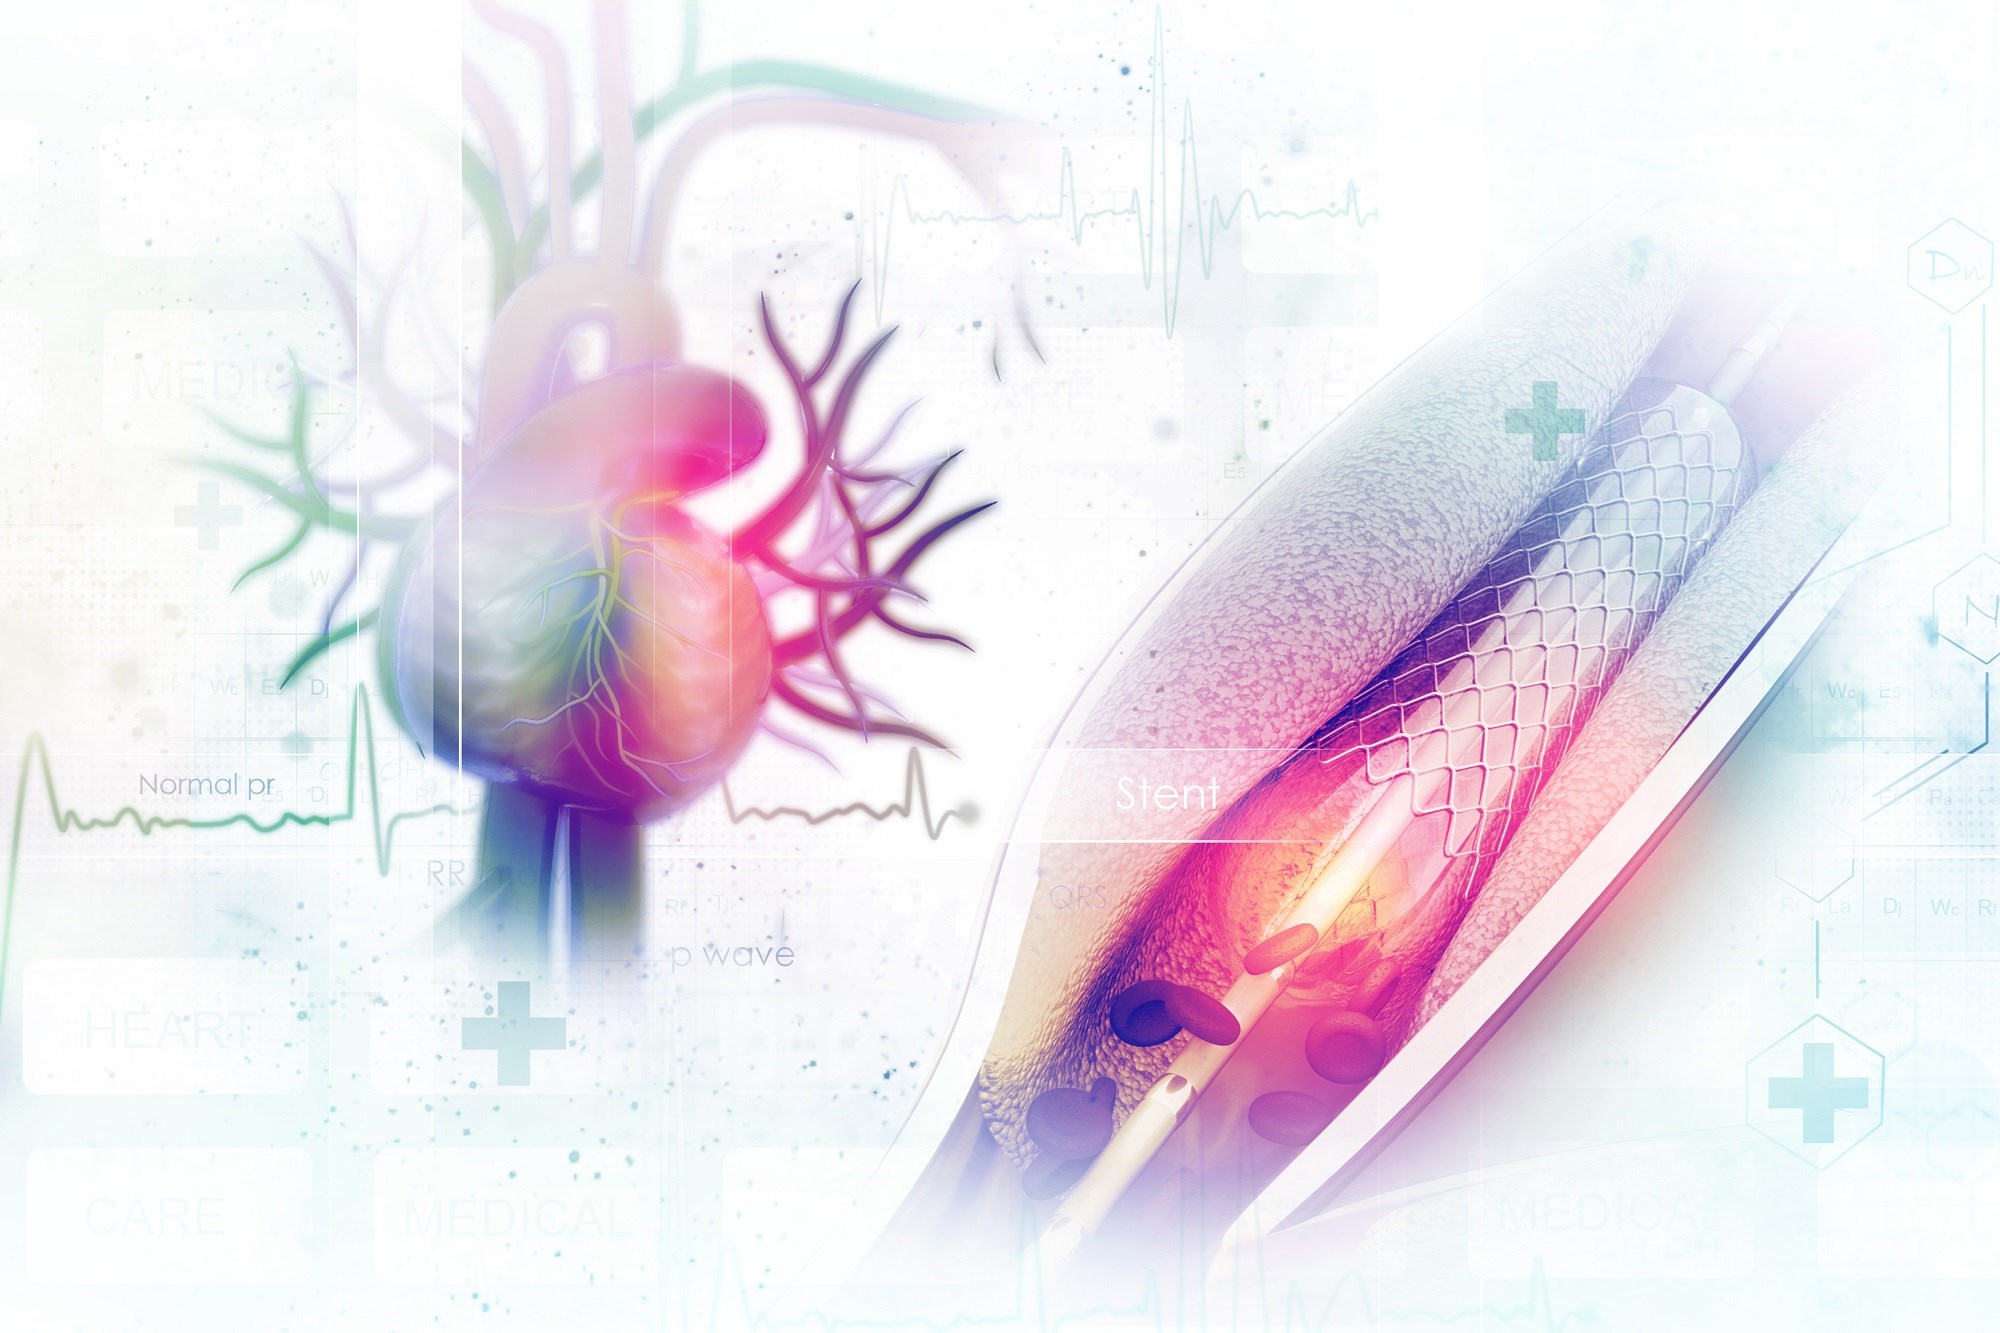 Ischemic stroke risk in patients who receive drug-eluting stents may be mitigated by achieving optimal platelet inhibition.